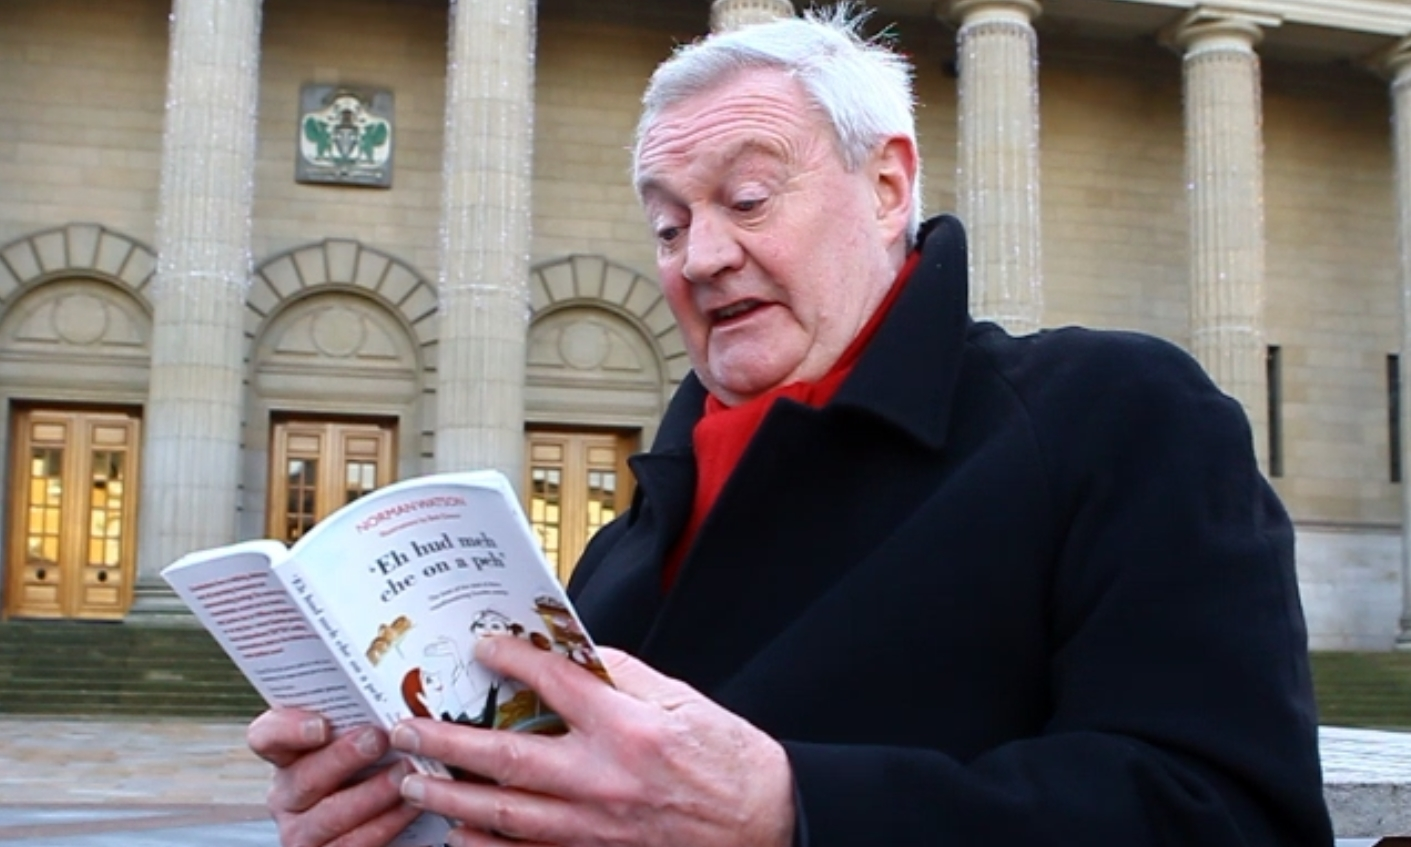 Alan Steadman reading some of his favourite sayings from the book.